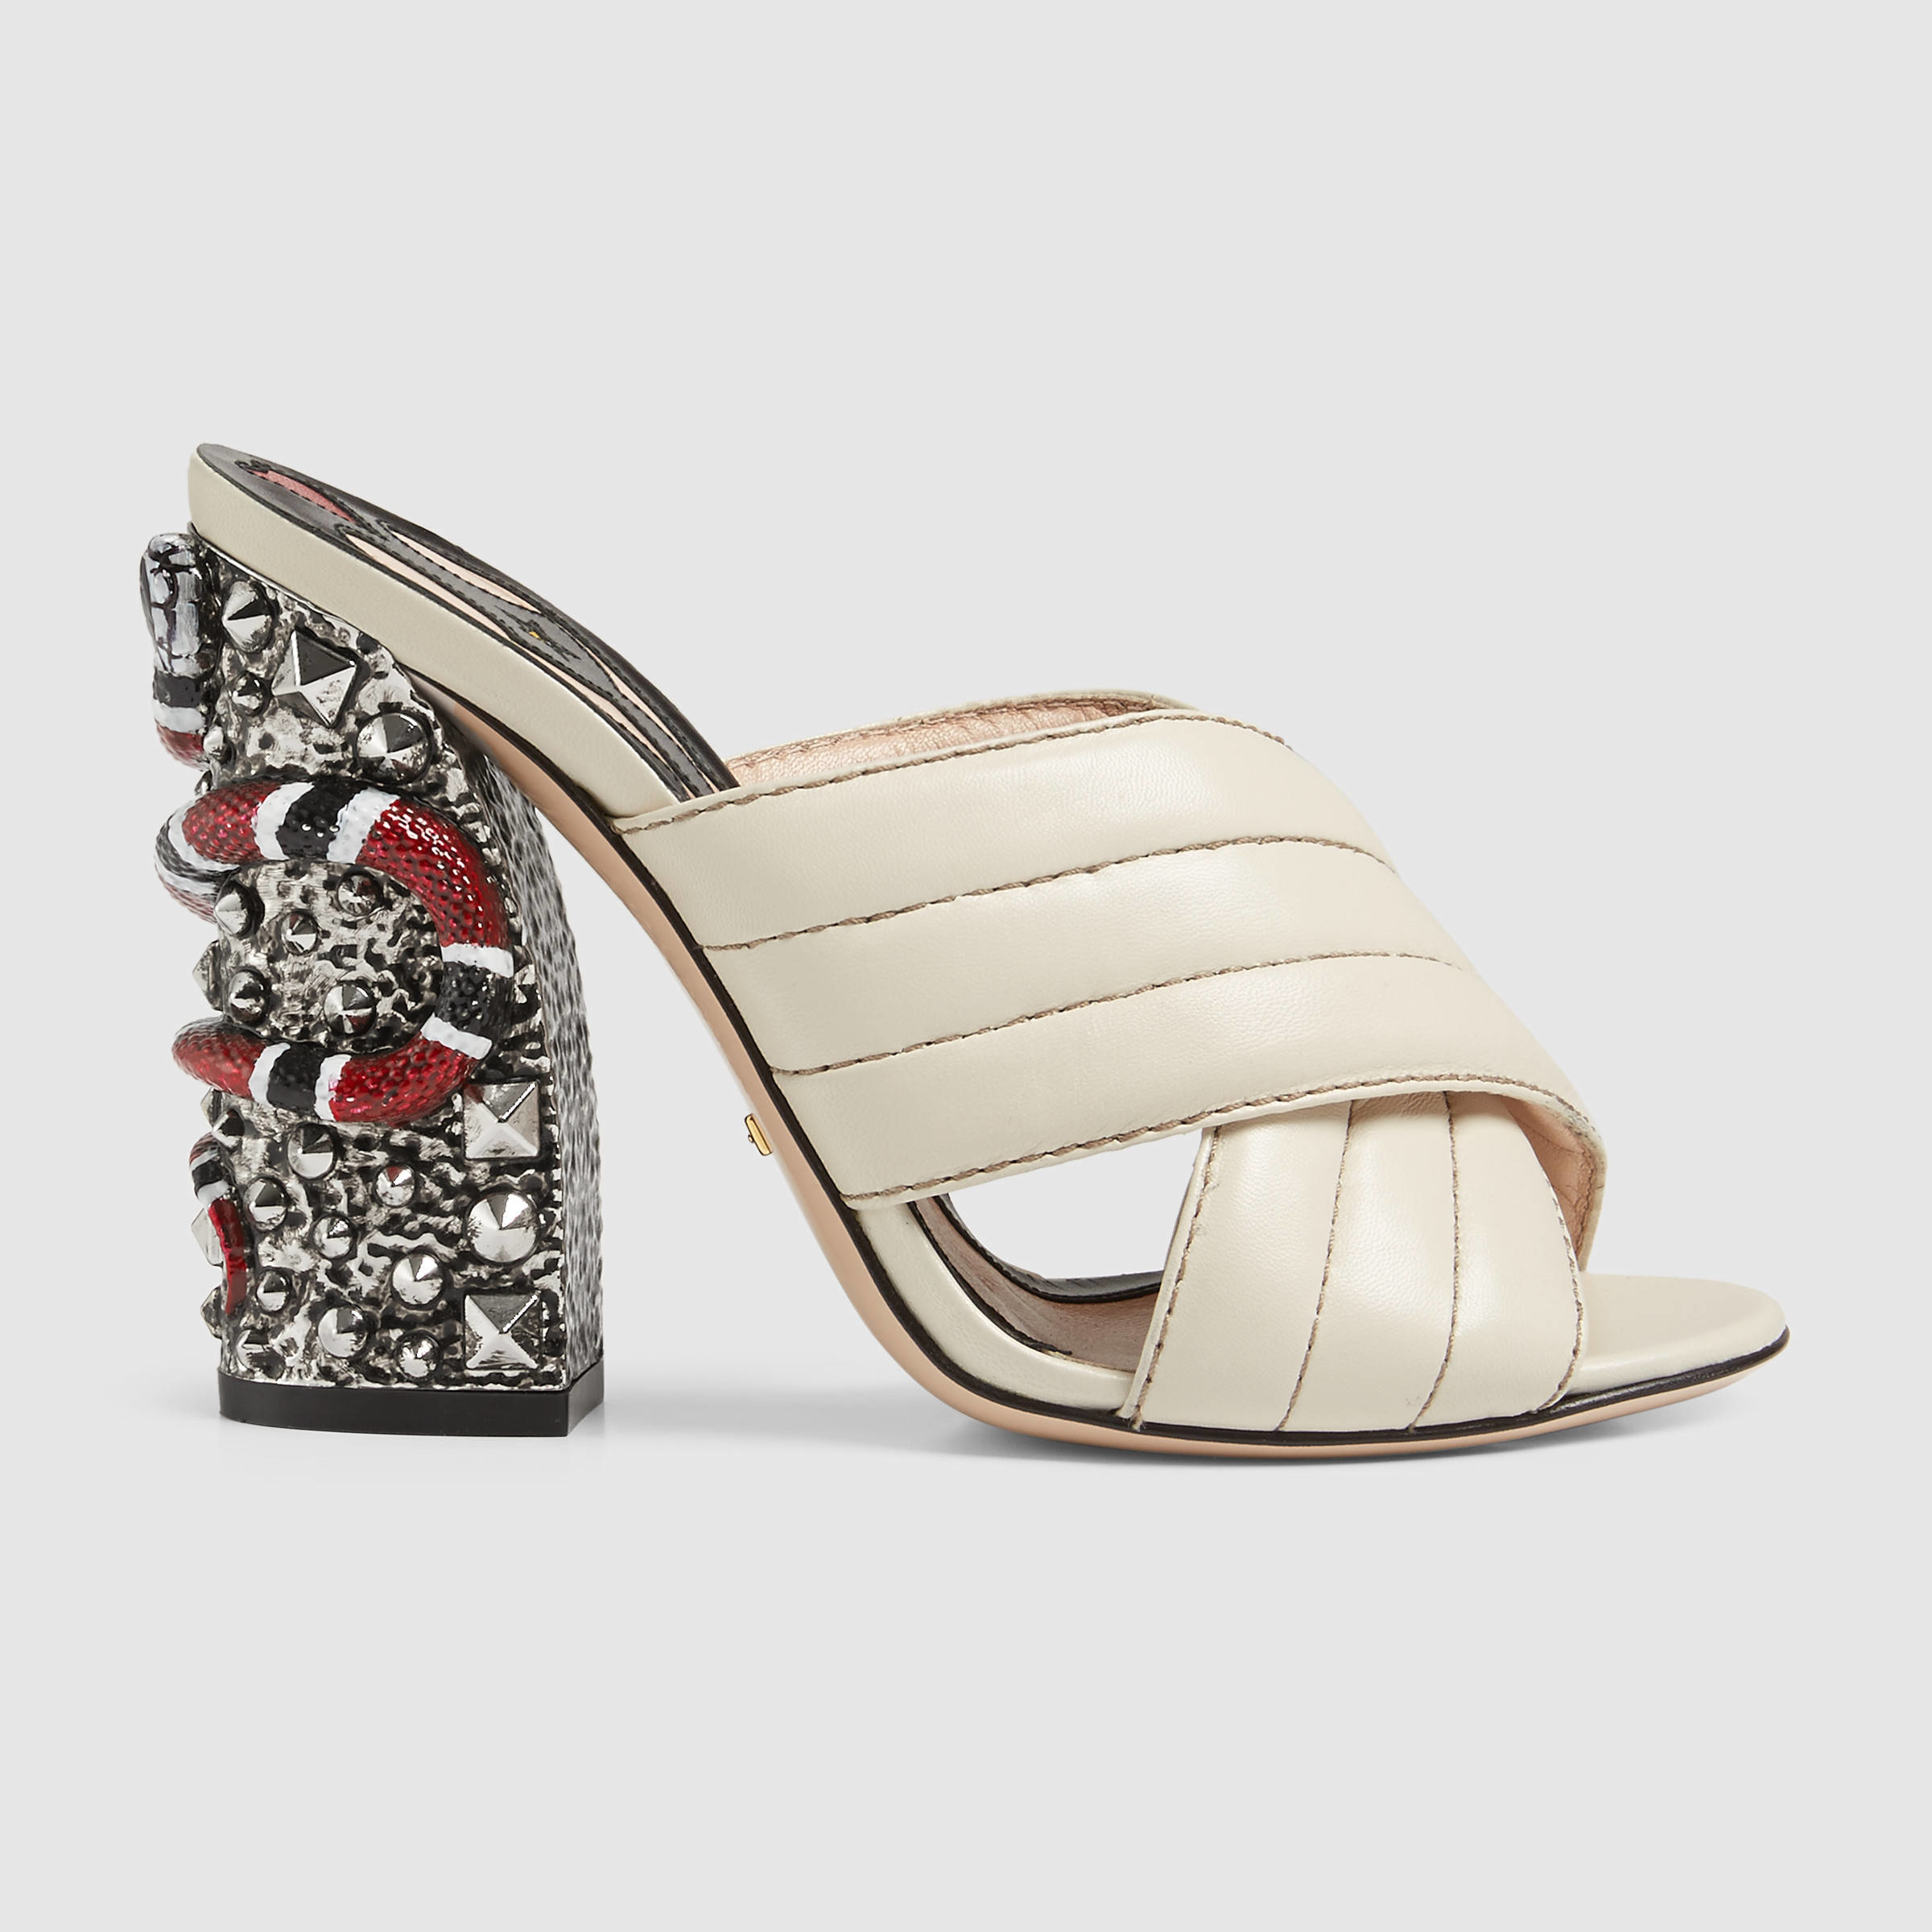 911c7bb8f3f Lyst - Gucci Romain Leather Crossover Sandal in White